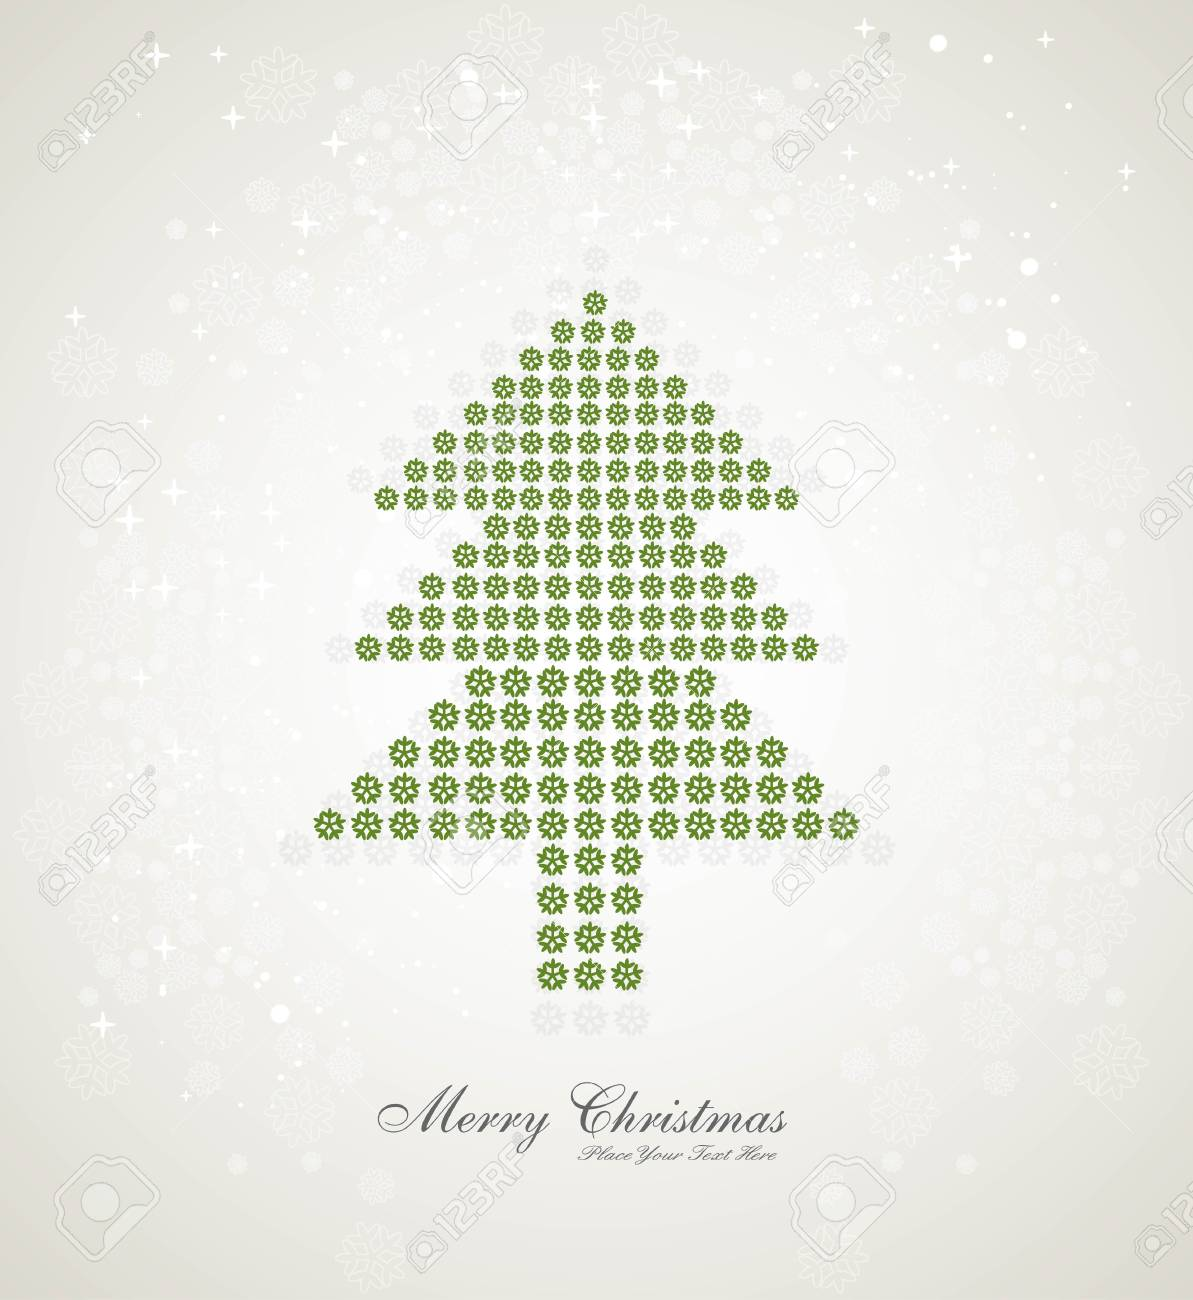 Merry christmas stylish tree colorful whit background Stock Vector - 17789772